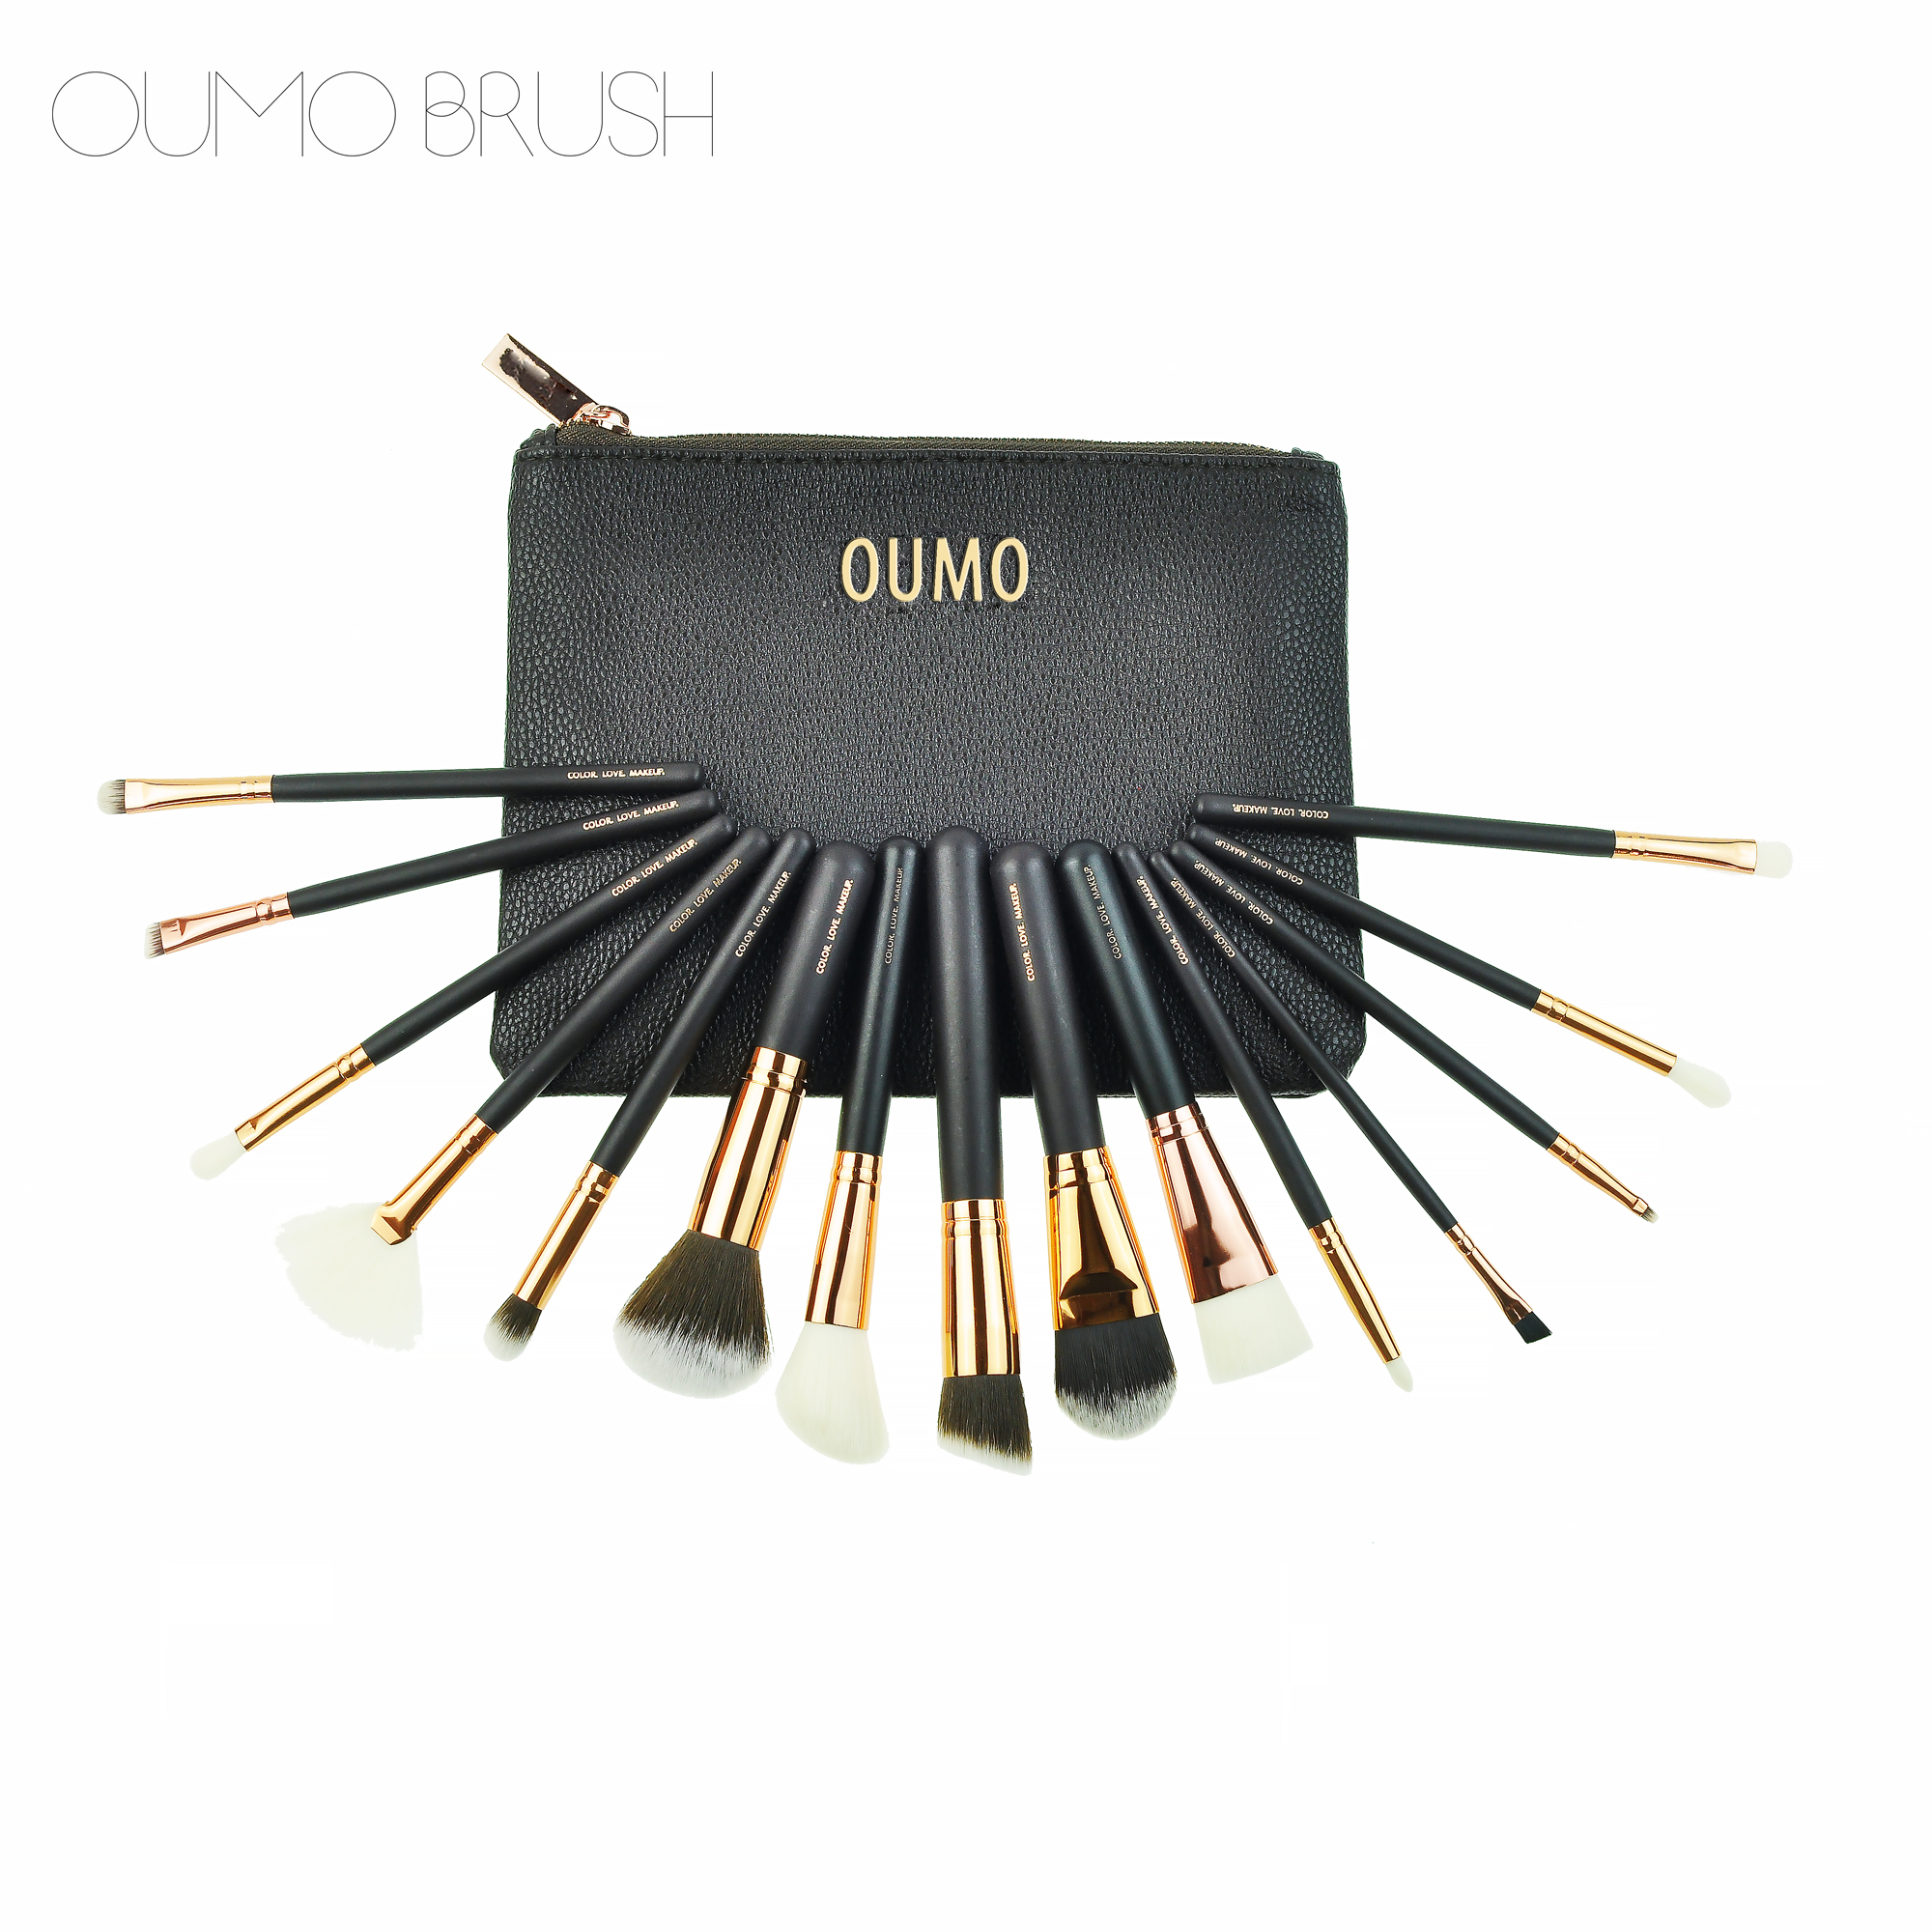 OUMO--2018 Amazon <strong>Best</strong> seller 15pcs OEM customer logo rose gold Makeup <strong>Brush</strong> With PU Bag